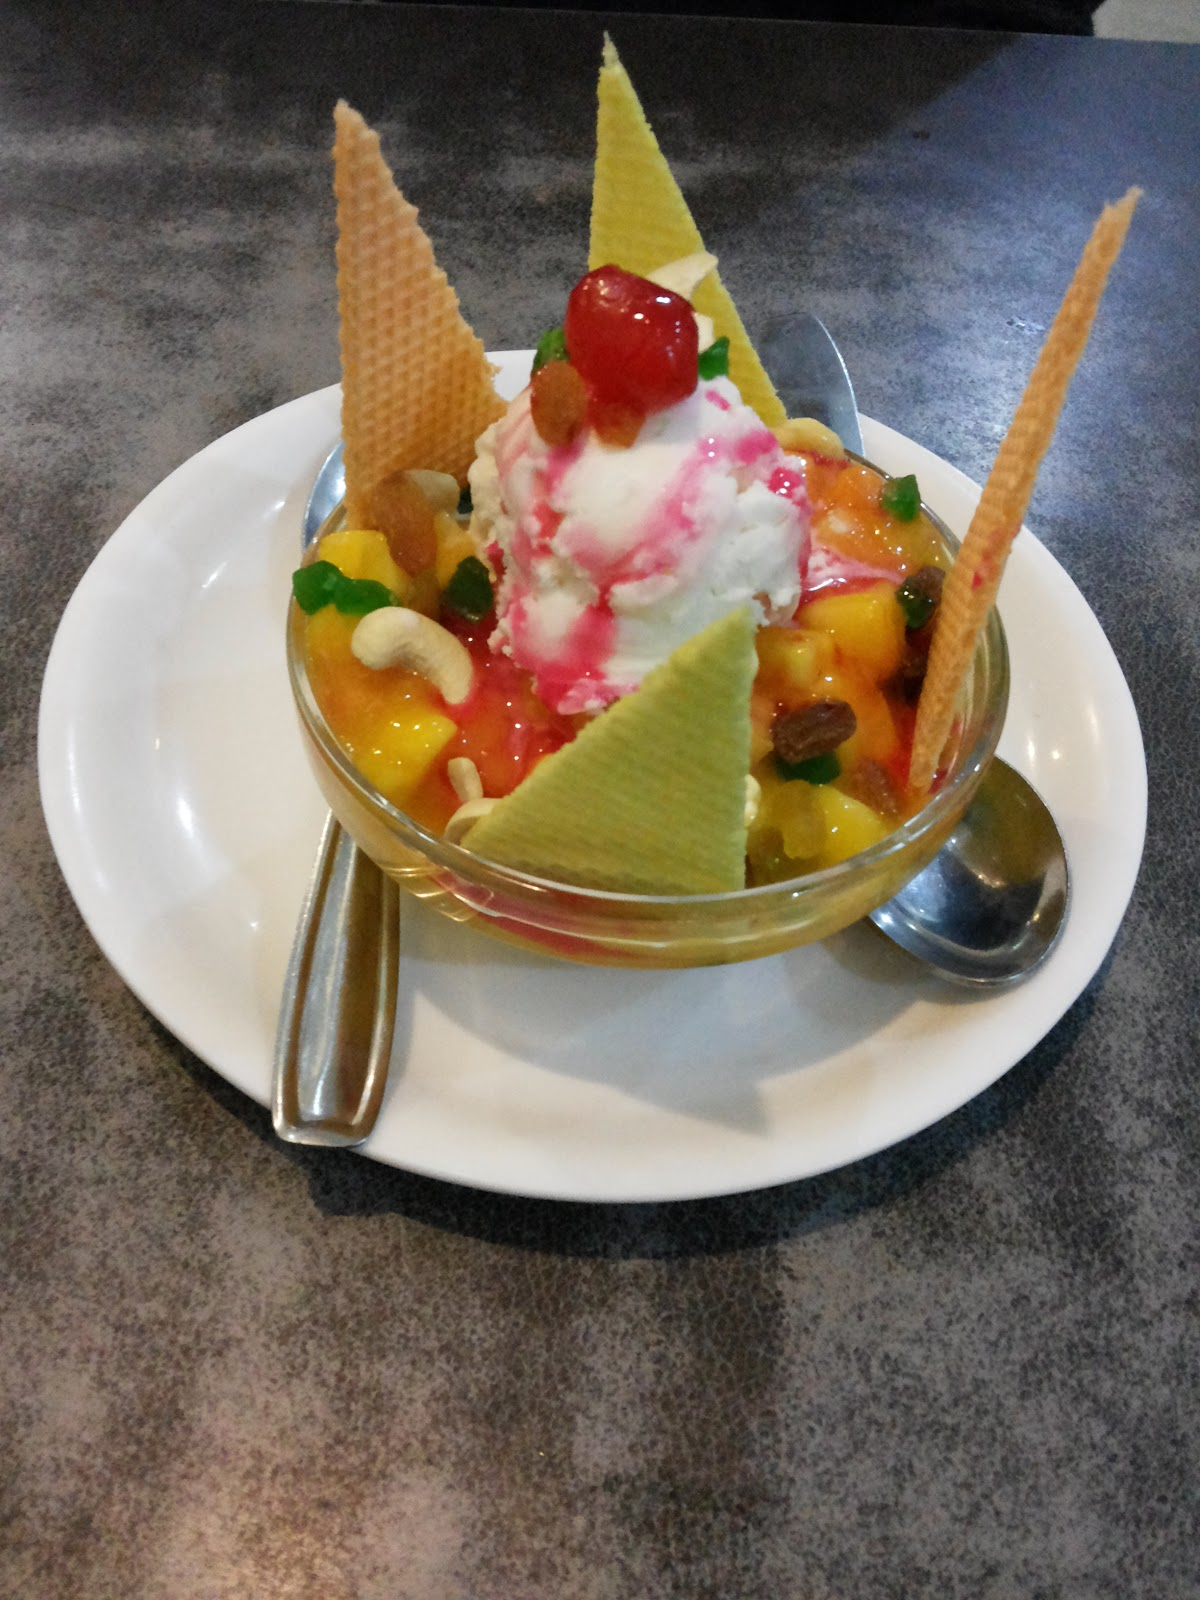 Fruit Salad with Ice-Cream at Shree Krishna Palace, best lunch place near pune railway station